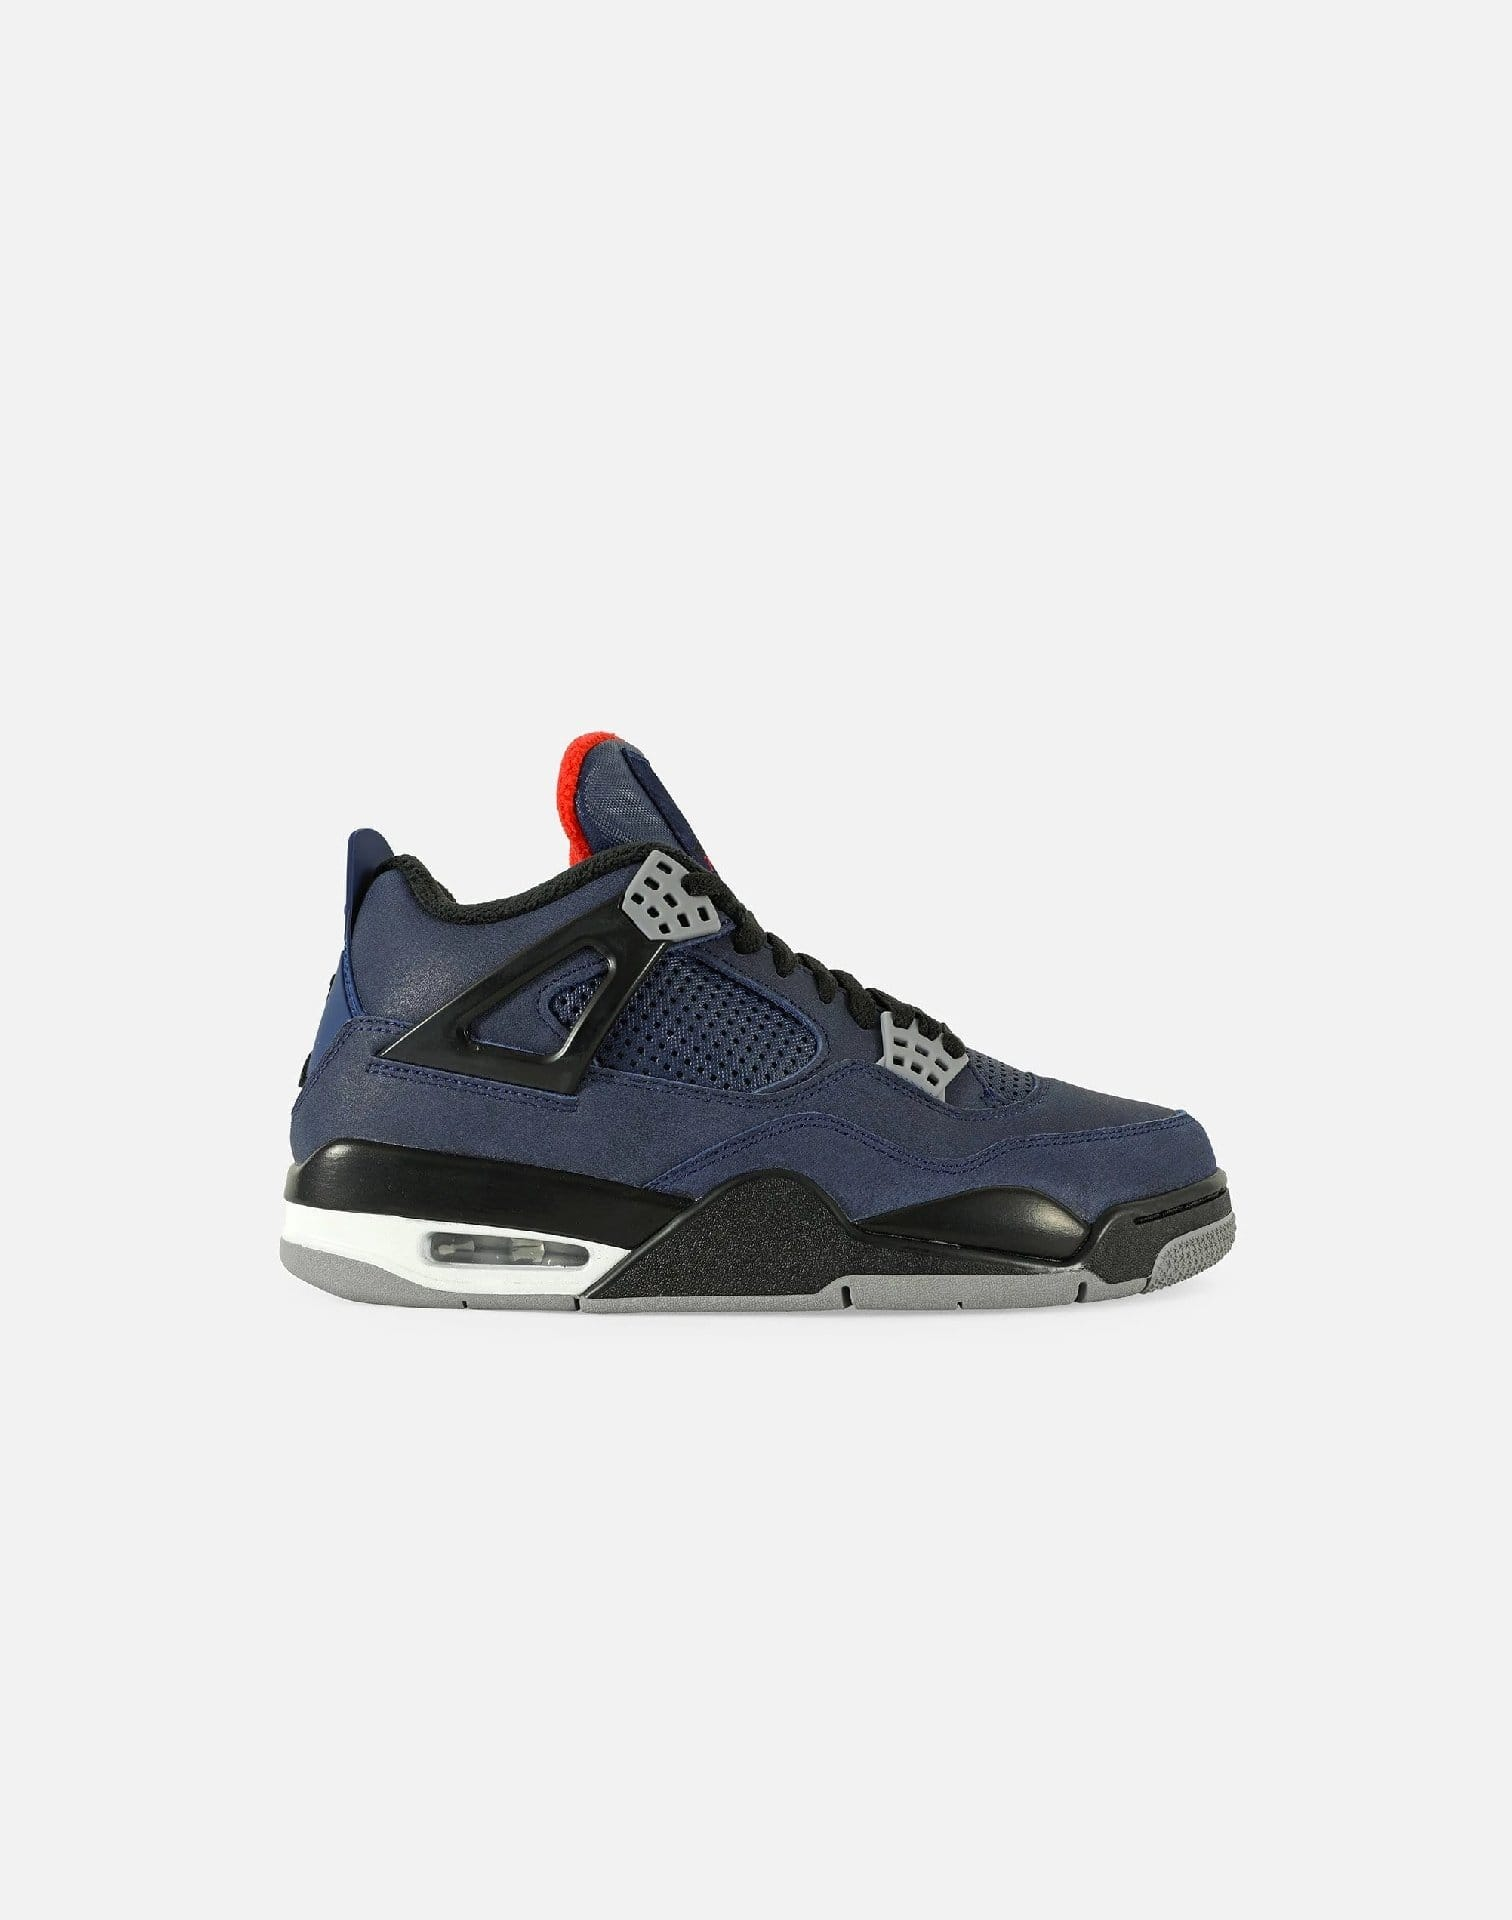 AIR JORDAN RETRO 4 WNTR GRADE-SCHOOL cq9745-401